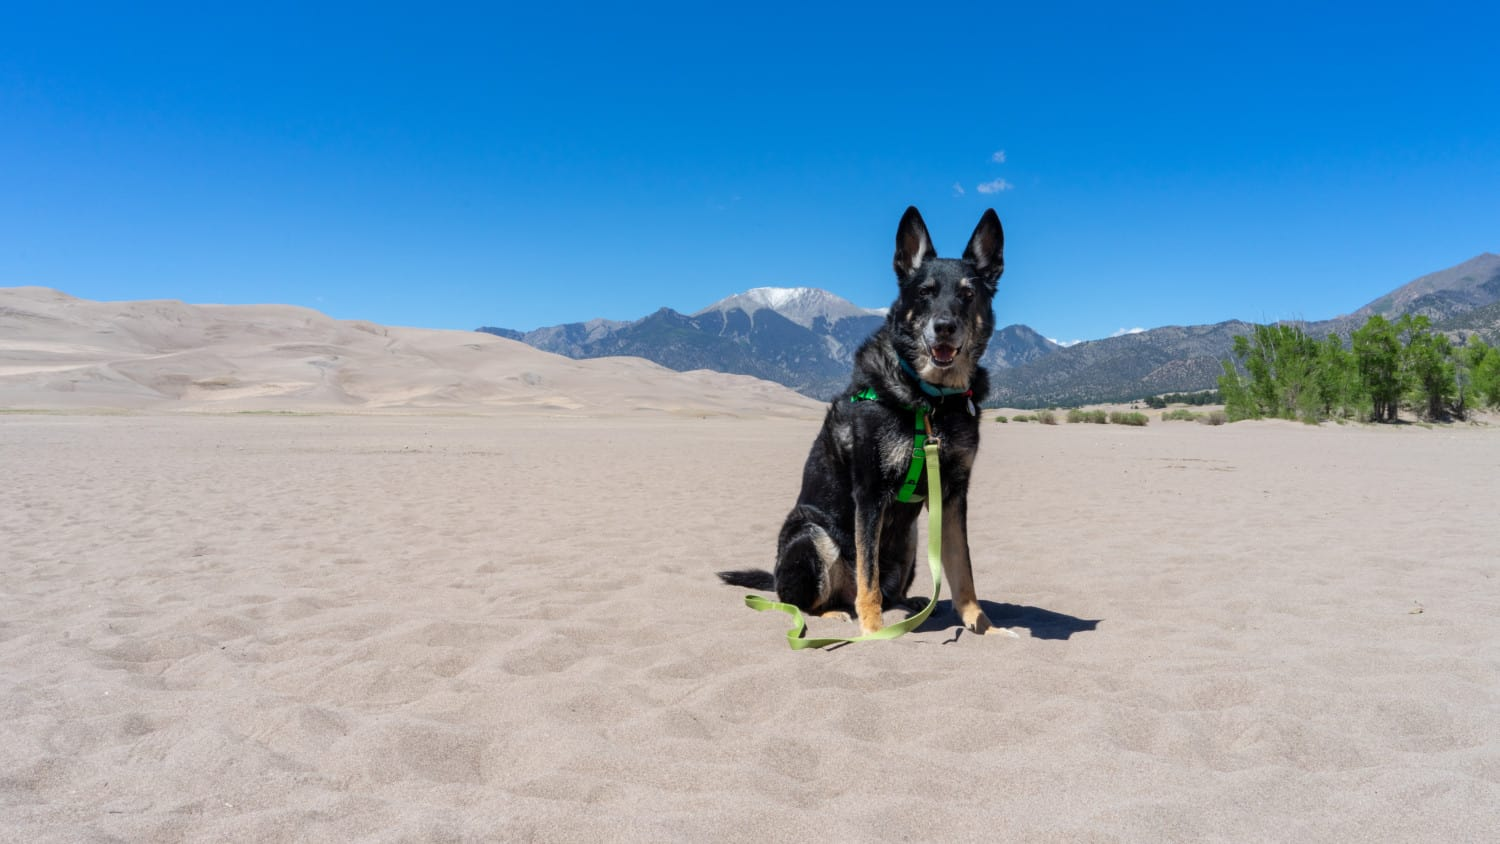 Buster the German Shepherd at pet friendly Great Sand Dunes National Park in Colorado